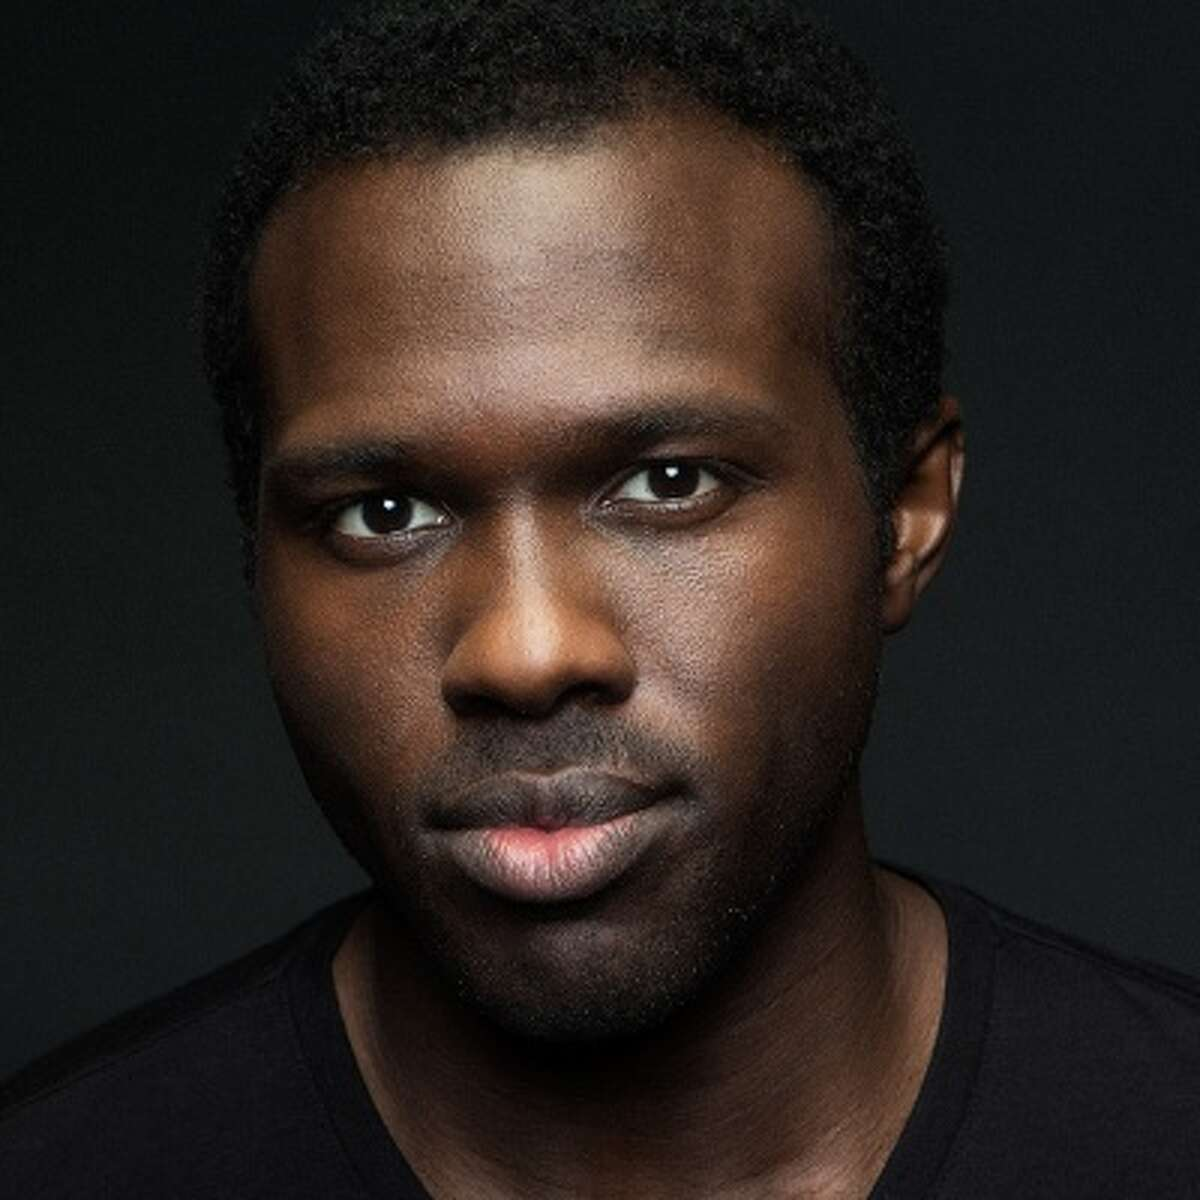 Meet the San Francisco 'Hamilton' cast: Joshua Henry (Aaron Burr) Henry received Tony nominations for his work in